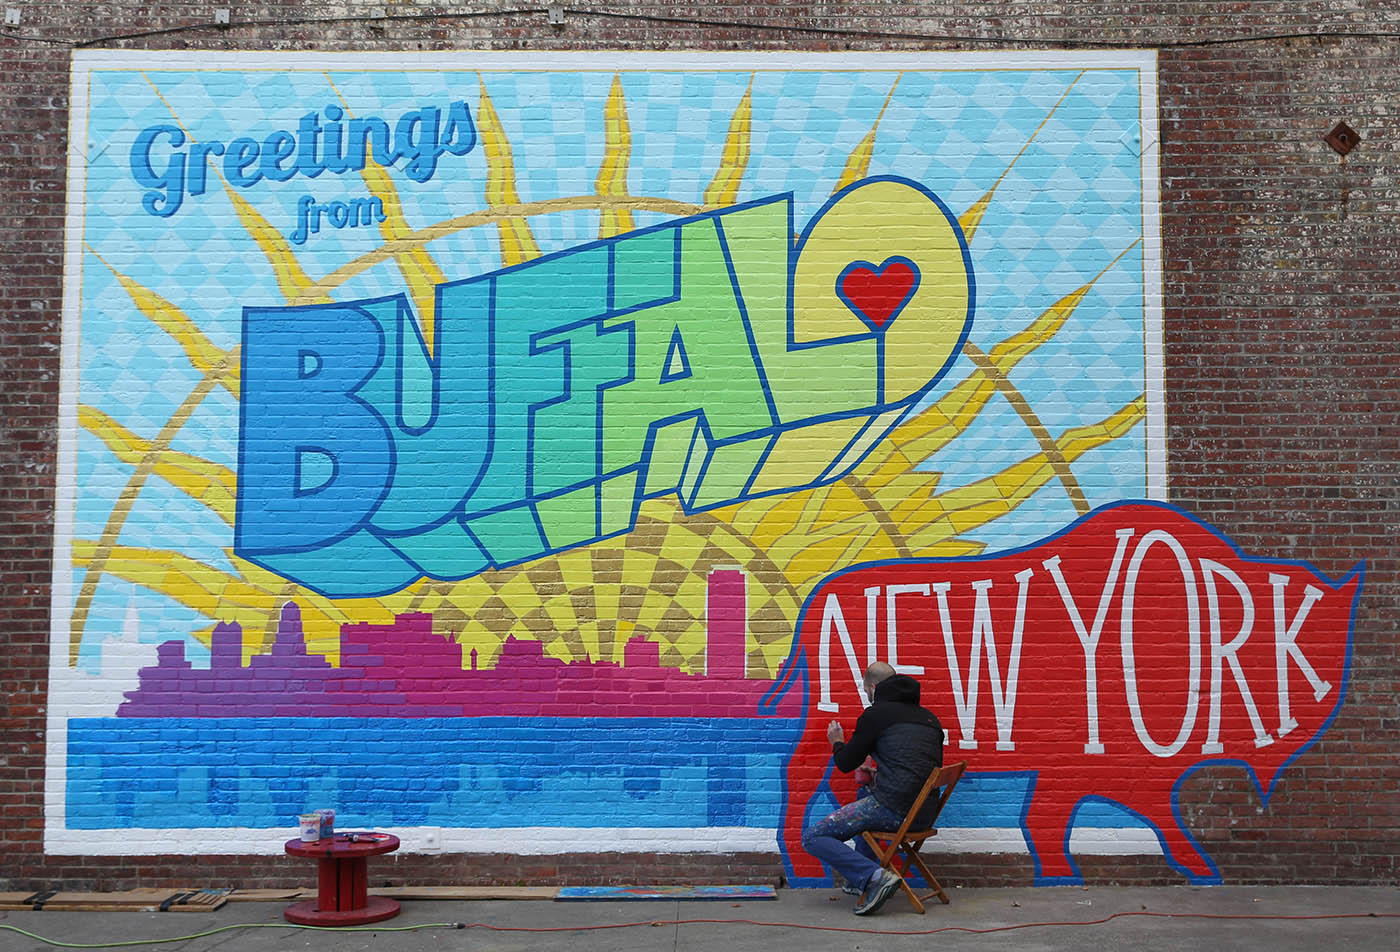 Artist Casey William Milbrand works on his colorful new 'Greetings from Buffalo' mural on the south side of the Washington Market building at 461 Ellicott St,, Tuesday, Oct. 25, 2016.  (Sharon Cantillon/Buffalo News)